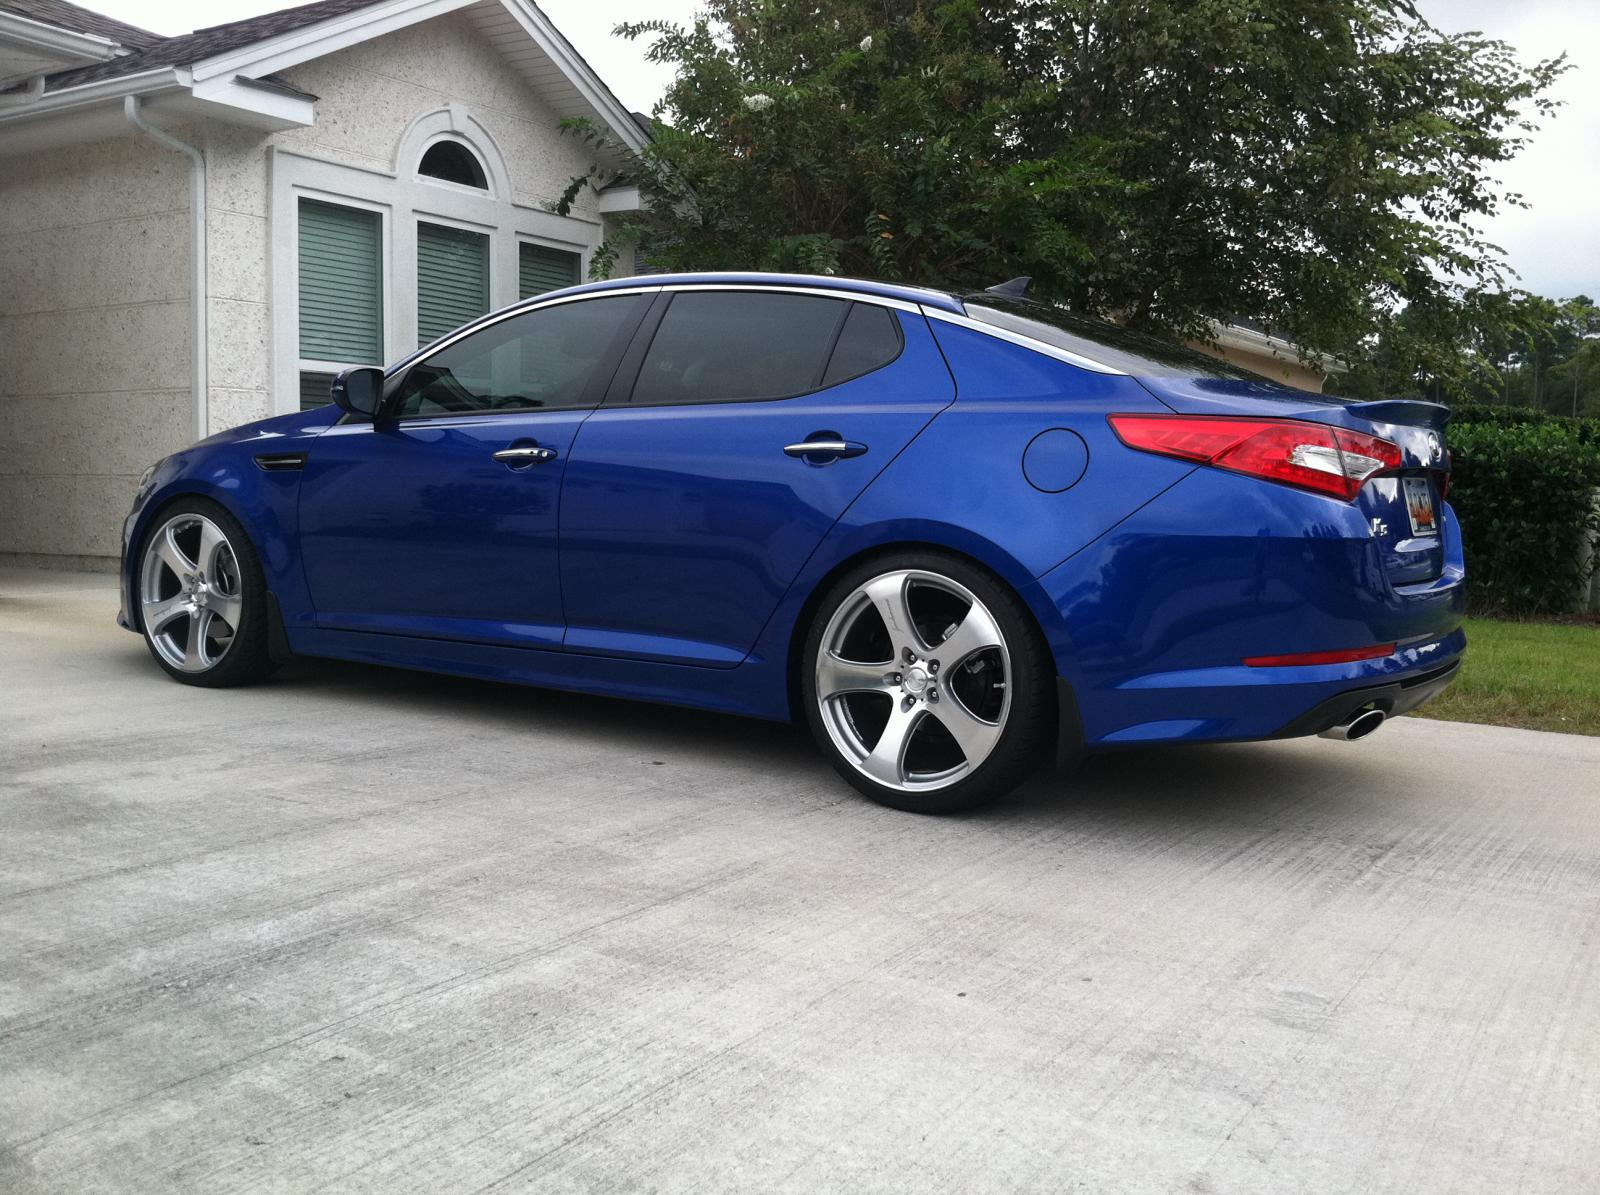 Lowered Optima SX - Kia Forum